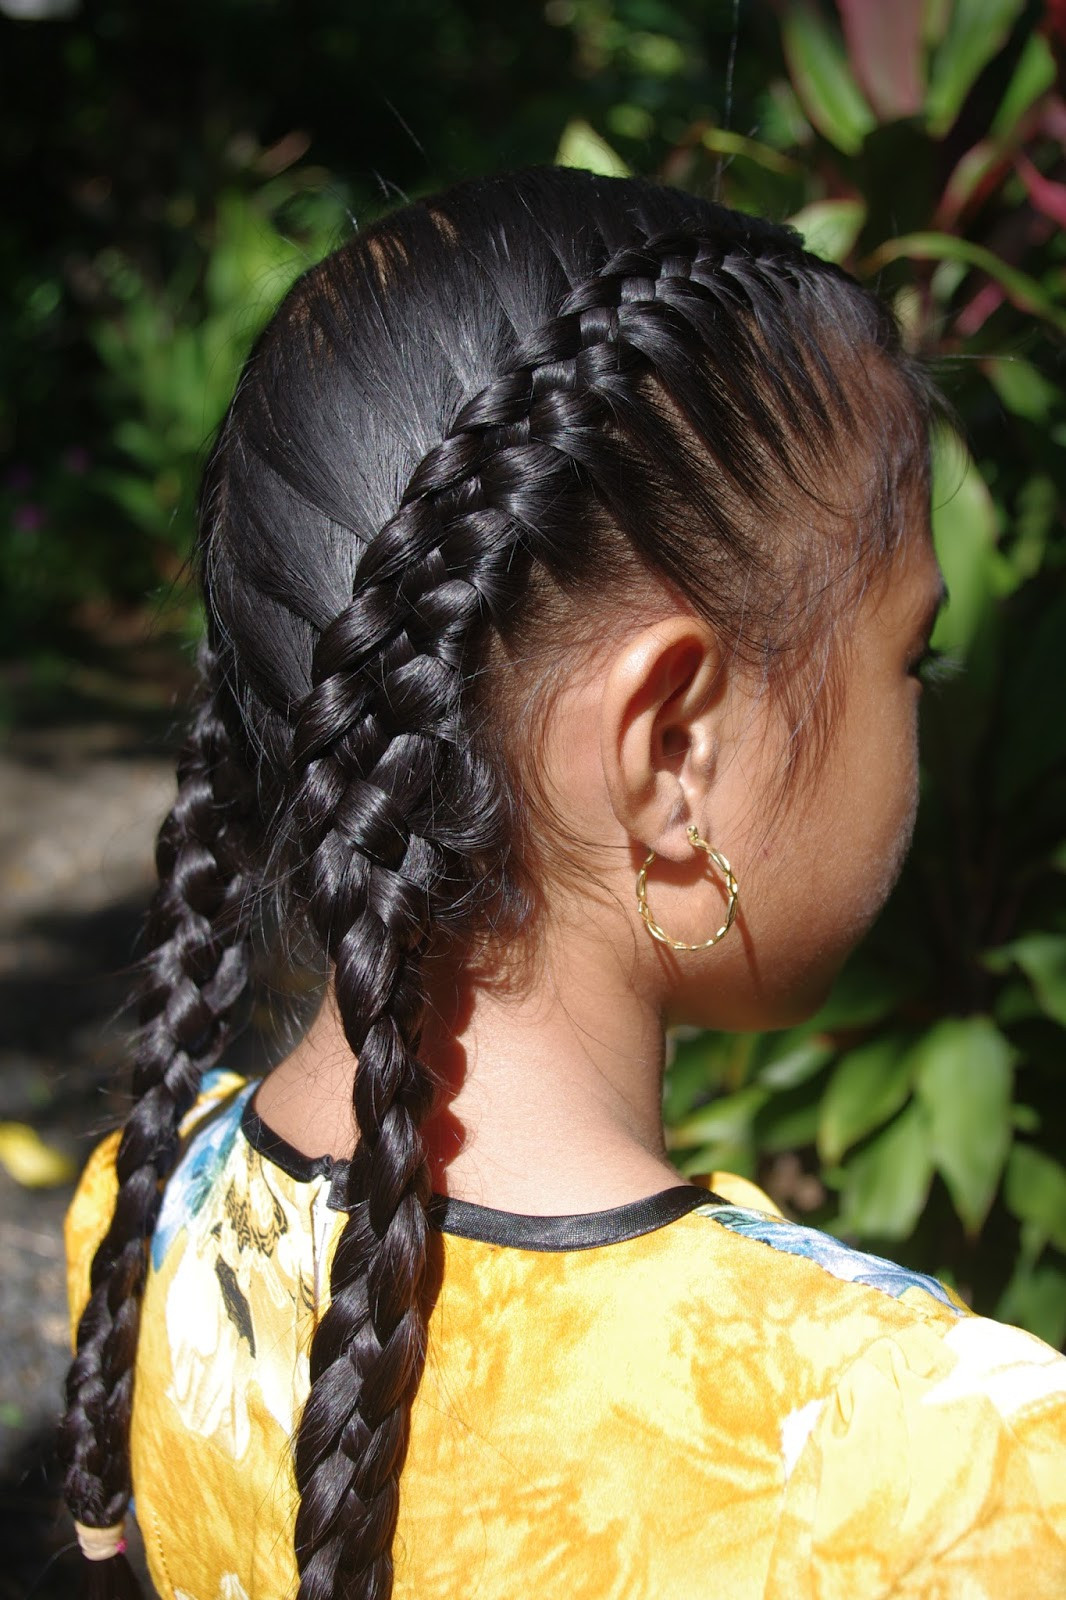 Hairstyles With Two Braids  Braids & Hairstyles for Super Long Hair July 2013